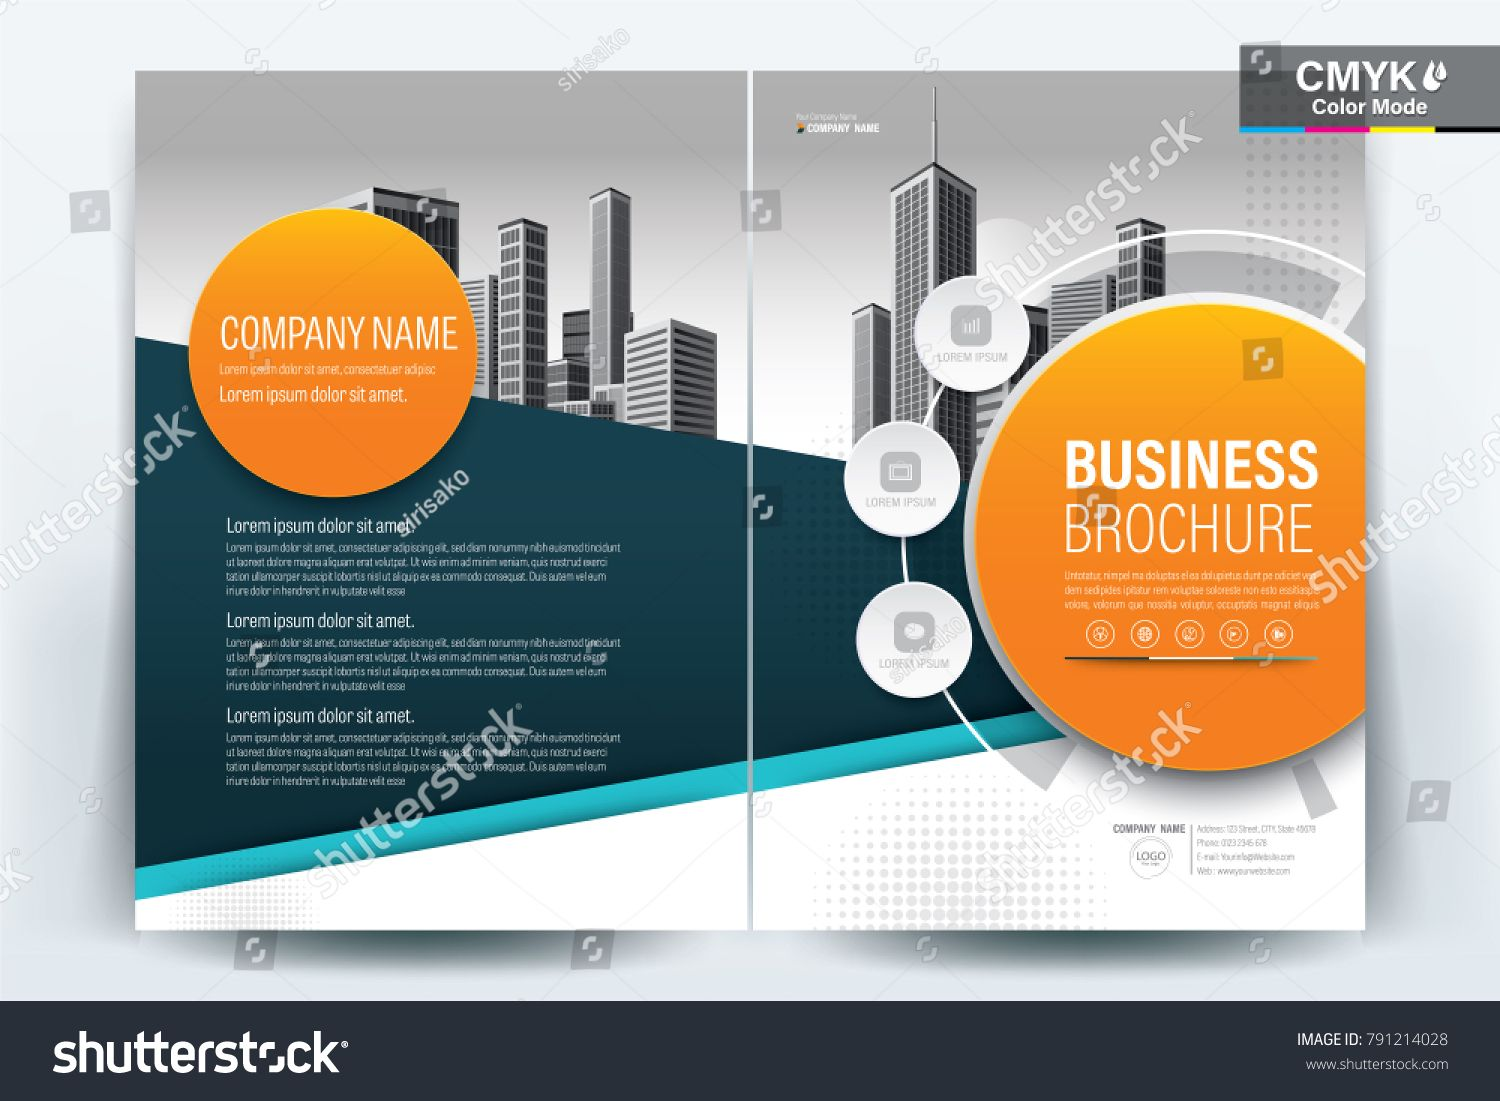 cb6f7135b4faa3 Business Brochure Background Design Template, Flyer Layout, Poster,  Magazine, Annual Report, Book, Booklet with Orange and Blue Circle and  Building Image.